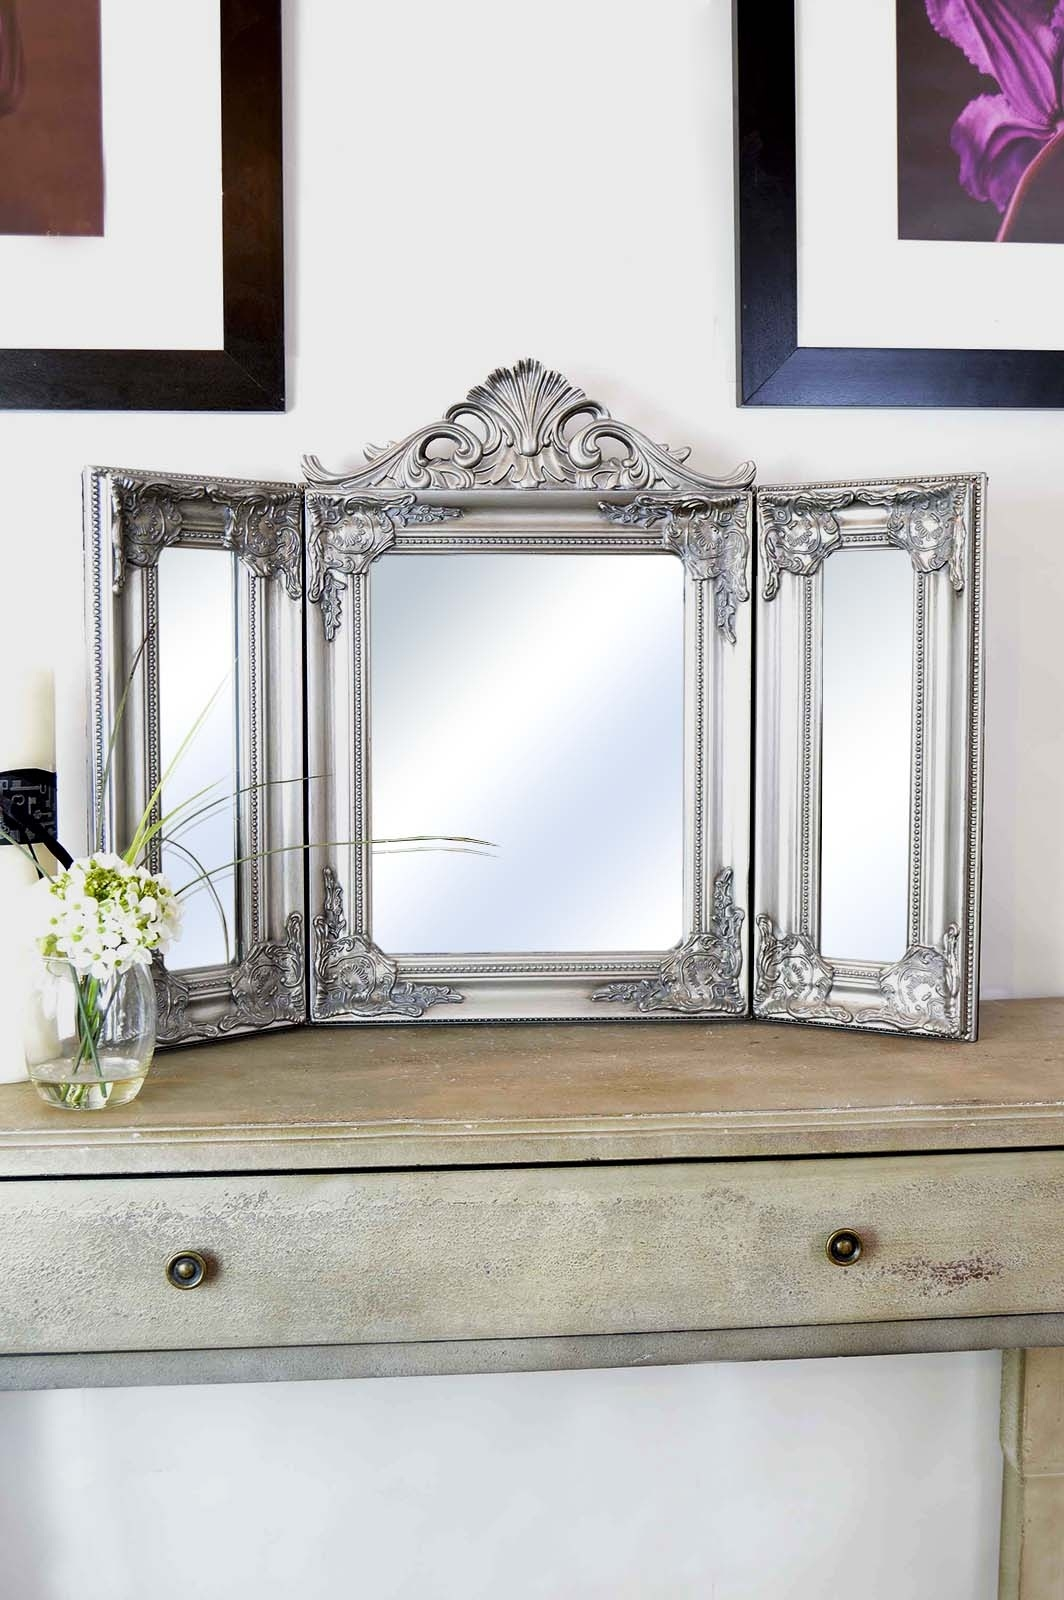 Elegant Silver Antique Style Design Free Standing Dressing Table Throughout Free Standing Dressing Table Mirror (Image 4 of 15)